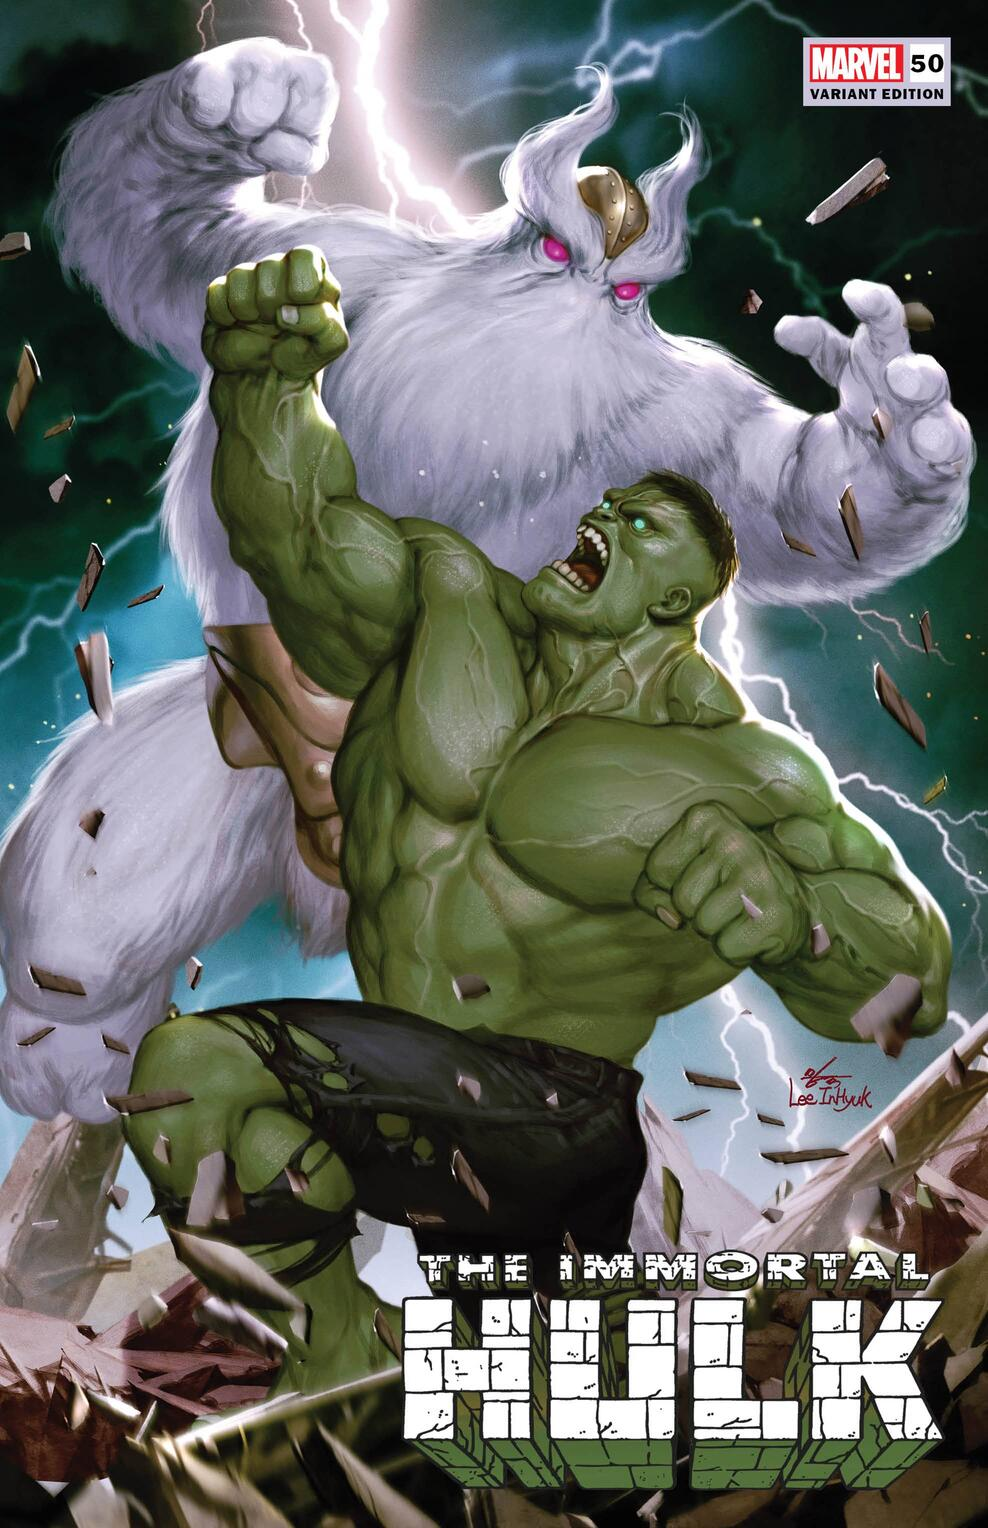 Immortal Hulk #50 Immortal Moments Variant Cover by InHyuk Lee